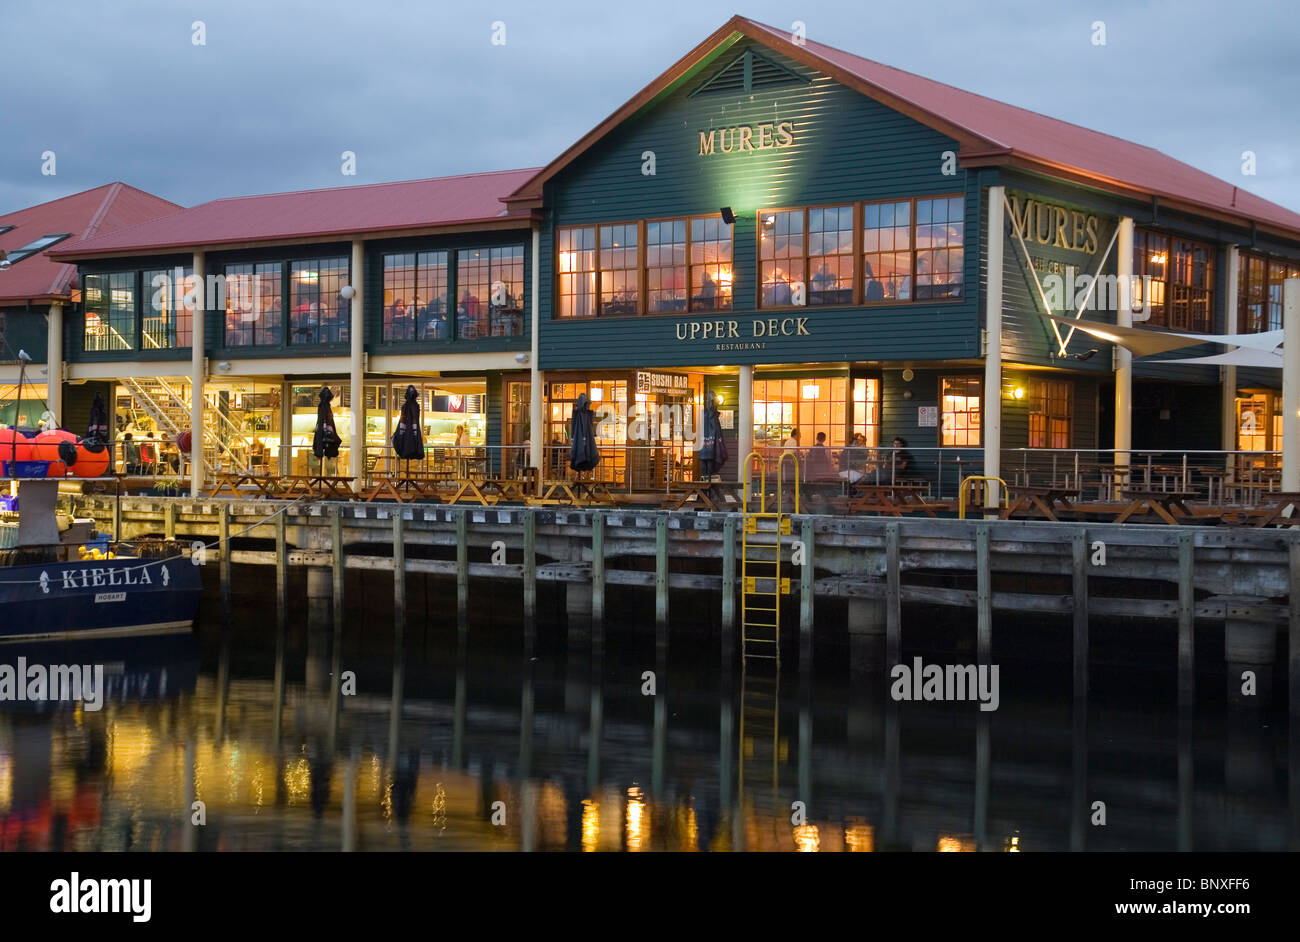 Mures - a renowned seafood bistro on Victoria Dock. Sullivans Cove, Hobart, Tasmania, AUSTRALIA - Stock Image